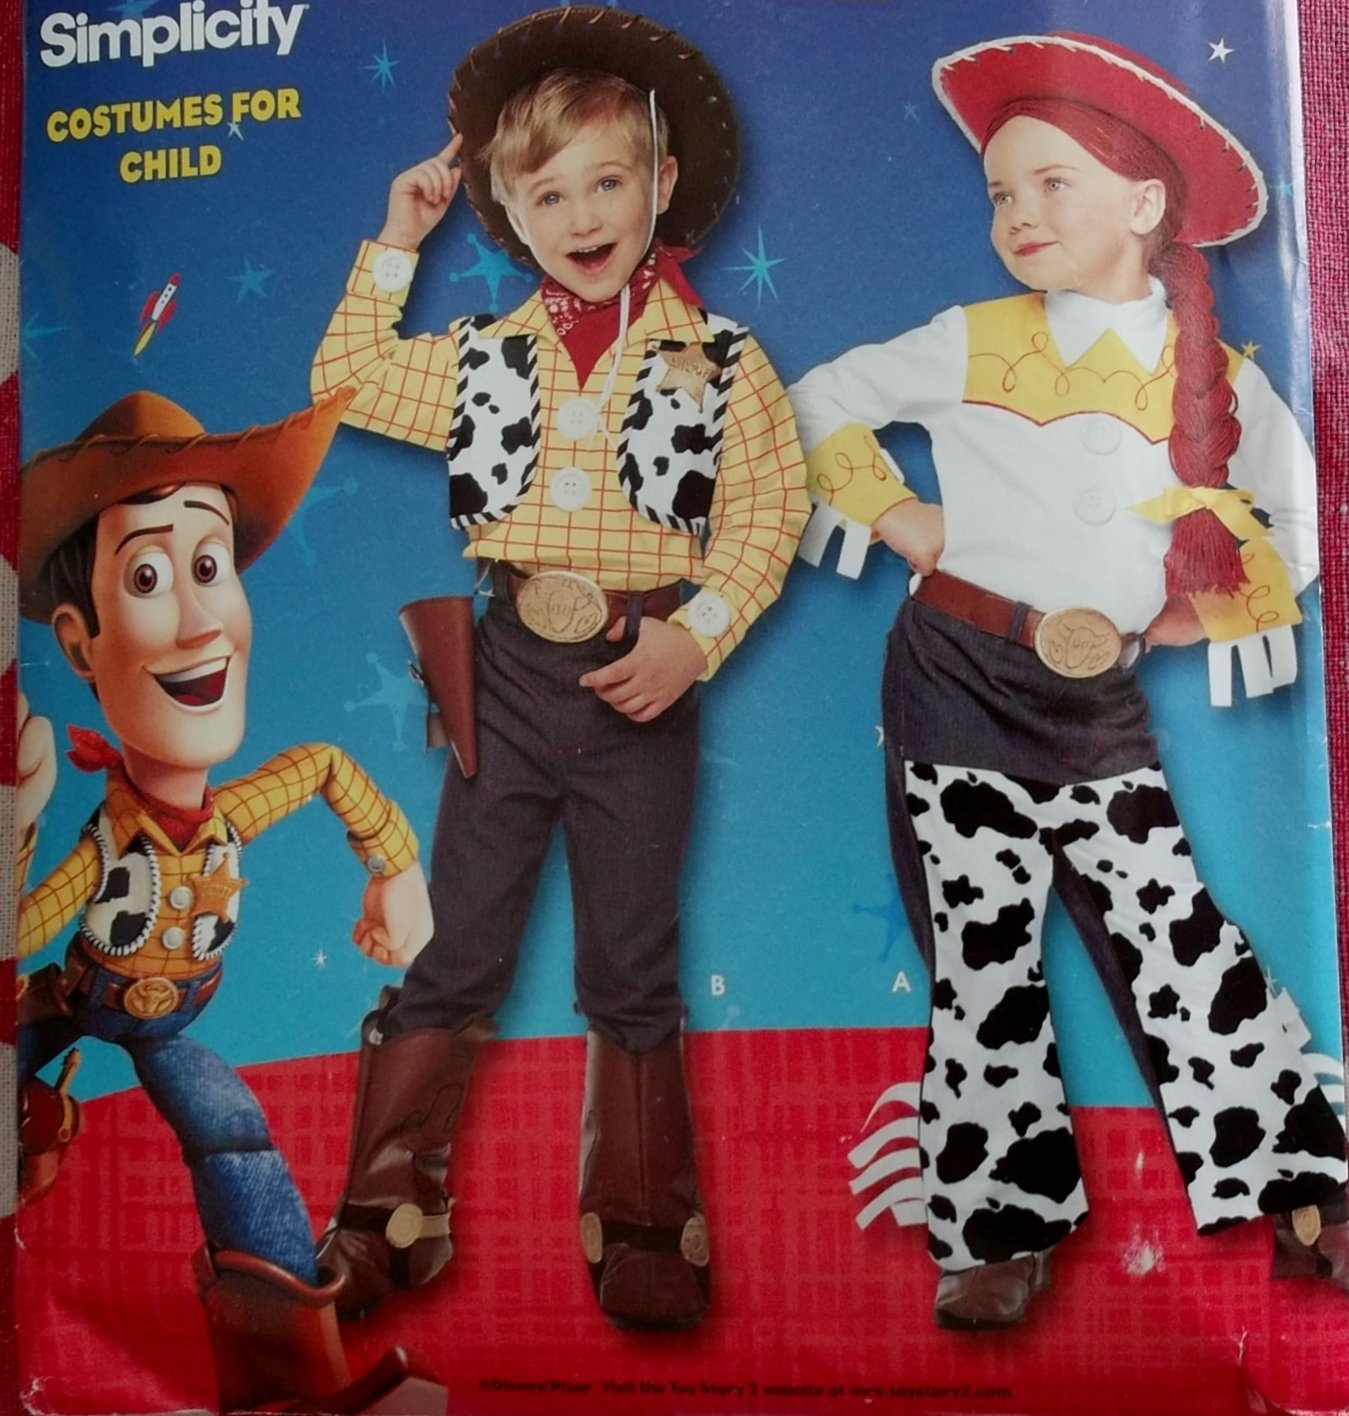 Disney Toy Story 2 Child's Costumes Sewing Pattern Simplicity 9433, Size 3 4 5 6 7 8, Uncut